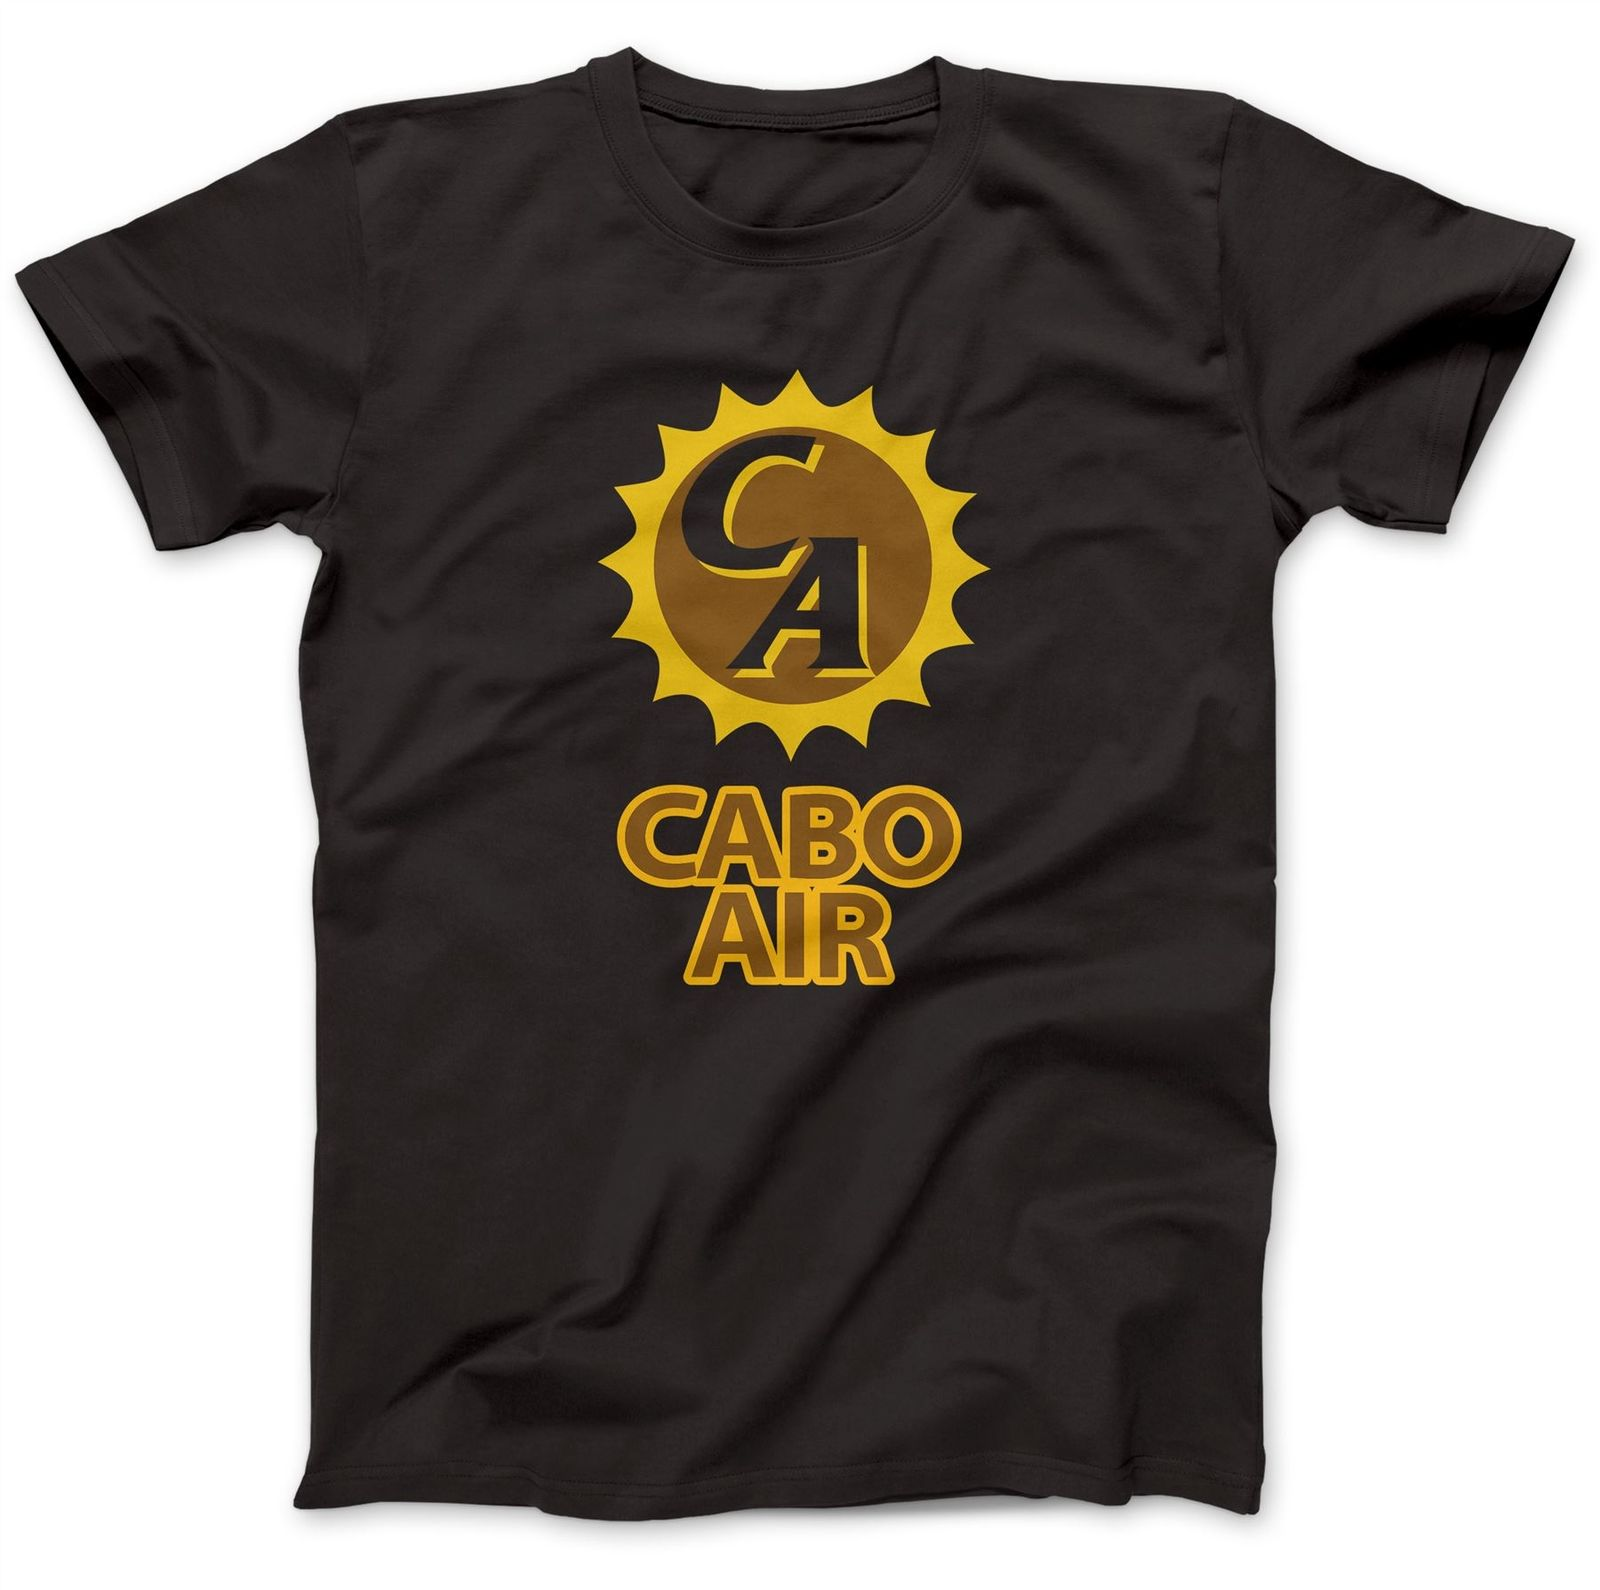 cabo-air-inspired-by-jackie-brown-t-shirt-100-premium-cotton-quentin-font-b-tarantino-b-font-100-cotton-t-shirts-brand-clothing-tops-tees